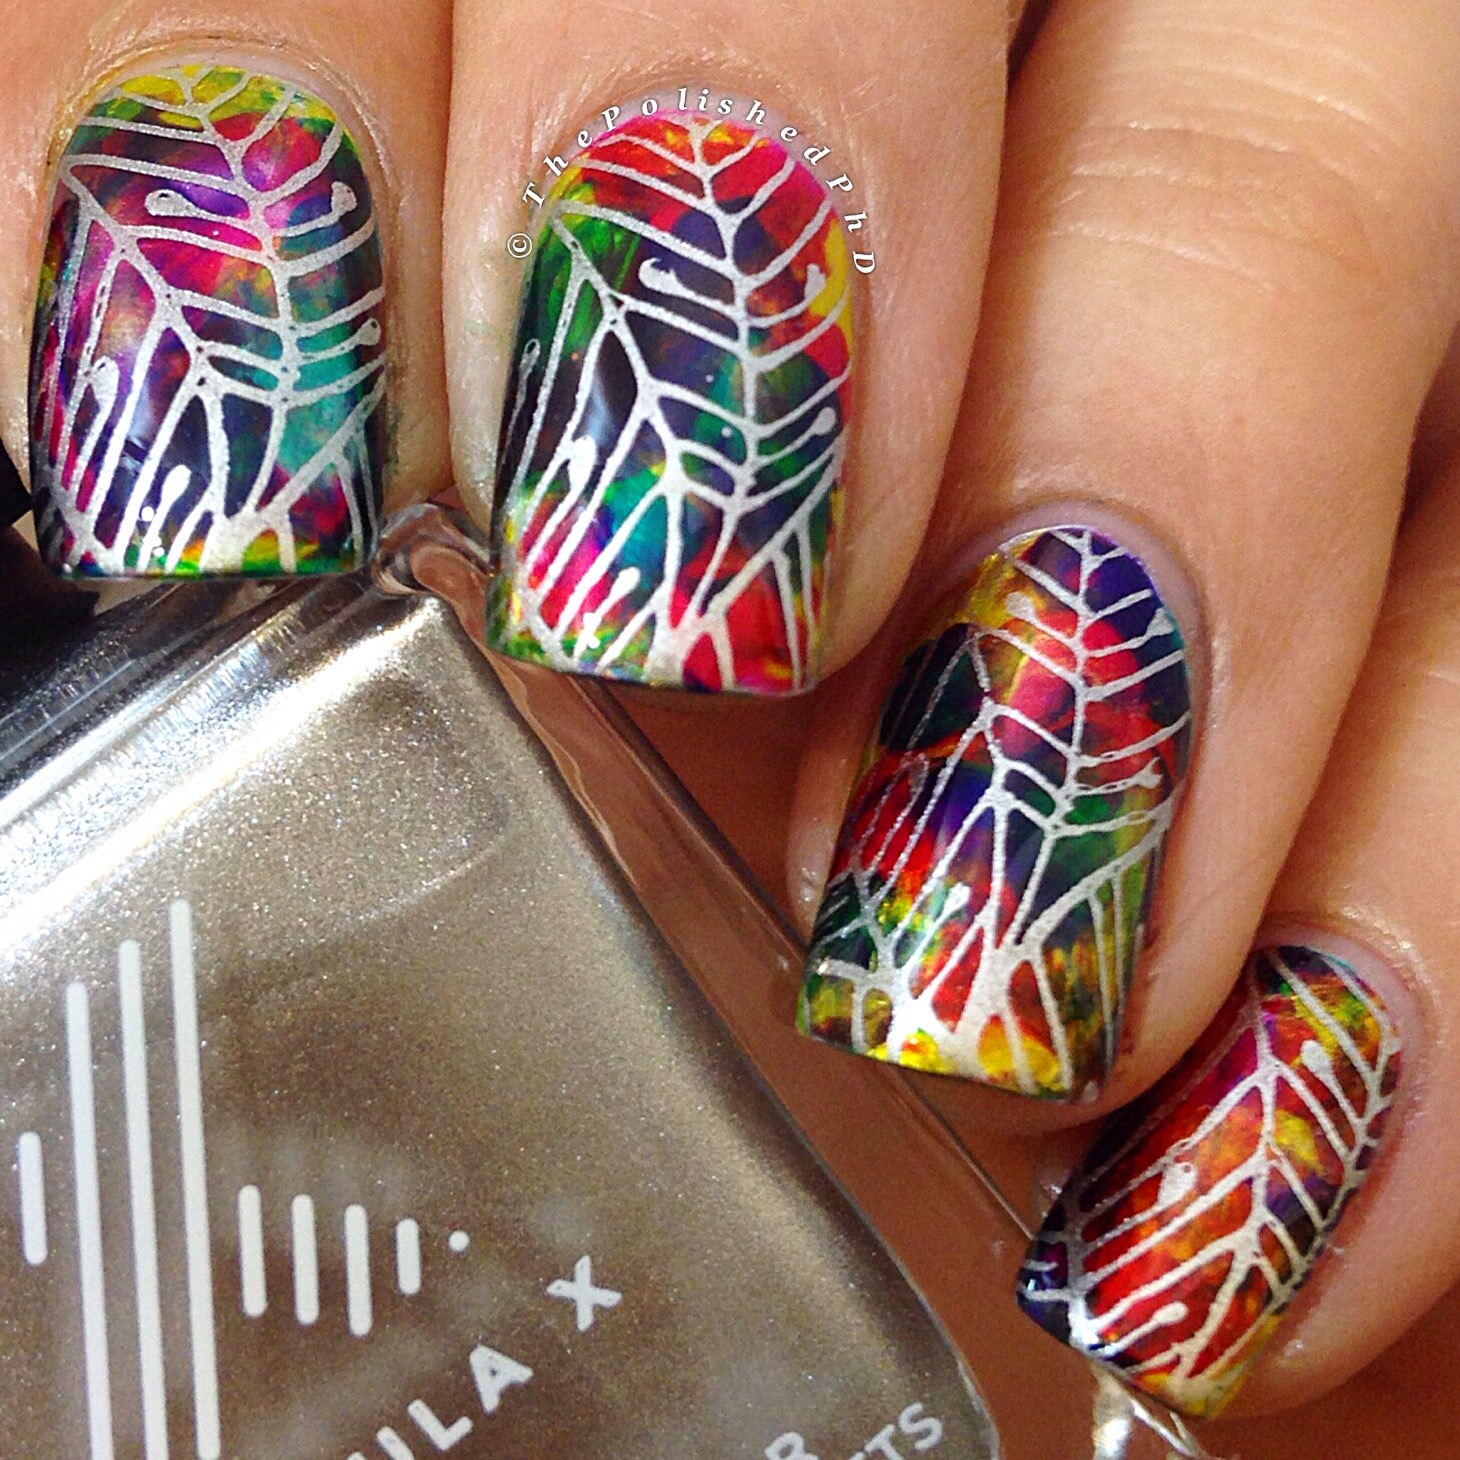 Extended review sephora formula x infinite ombr nail design sephora formula x infinite ombr nail design set prinsesfo Image collections